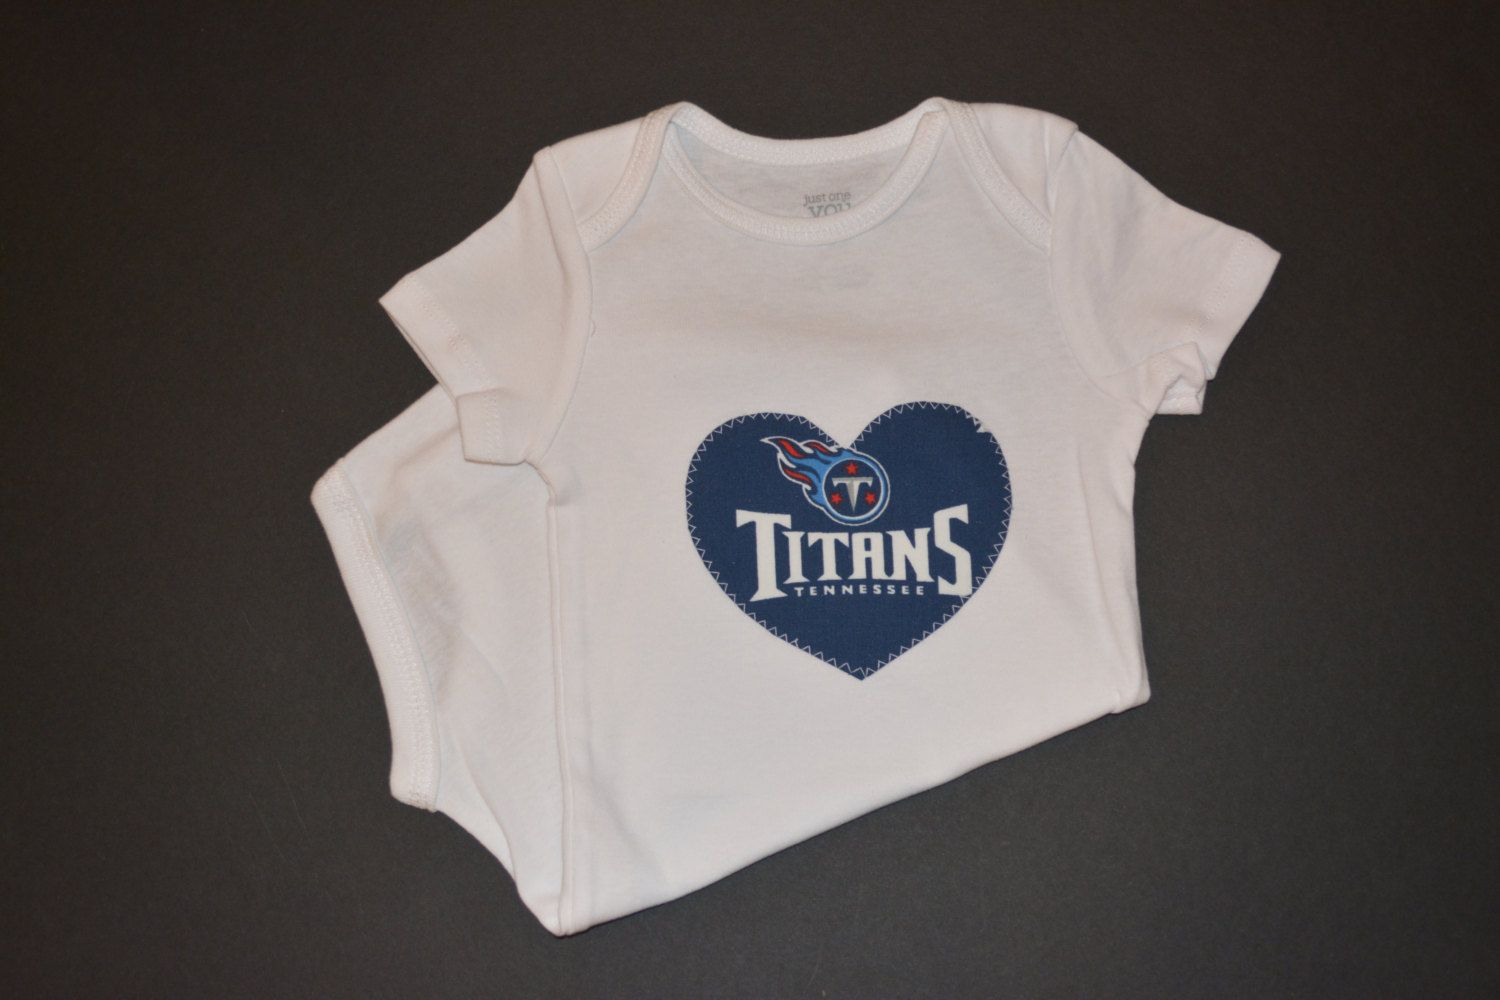 2fe11dc8 Tennessee Titans Baby - Titans Tshirt - Titans Baby Girl Outfit ...